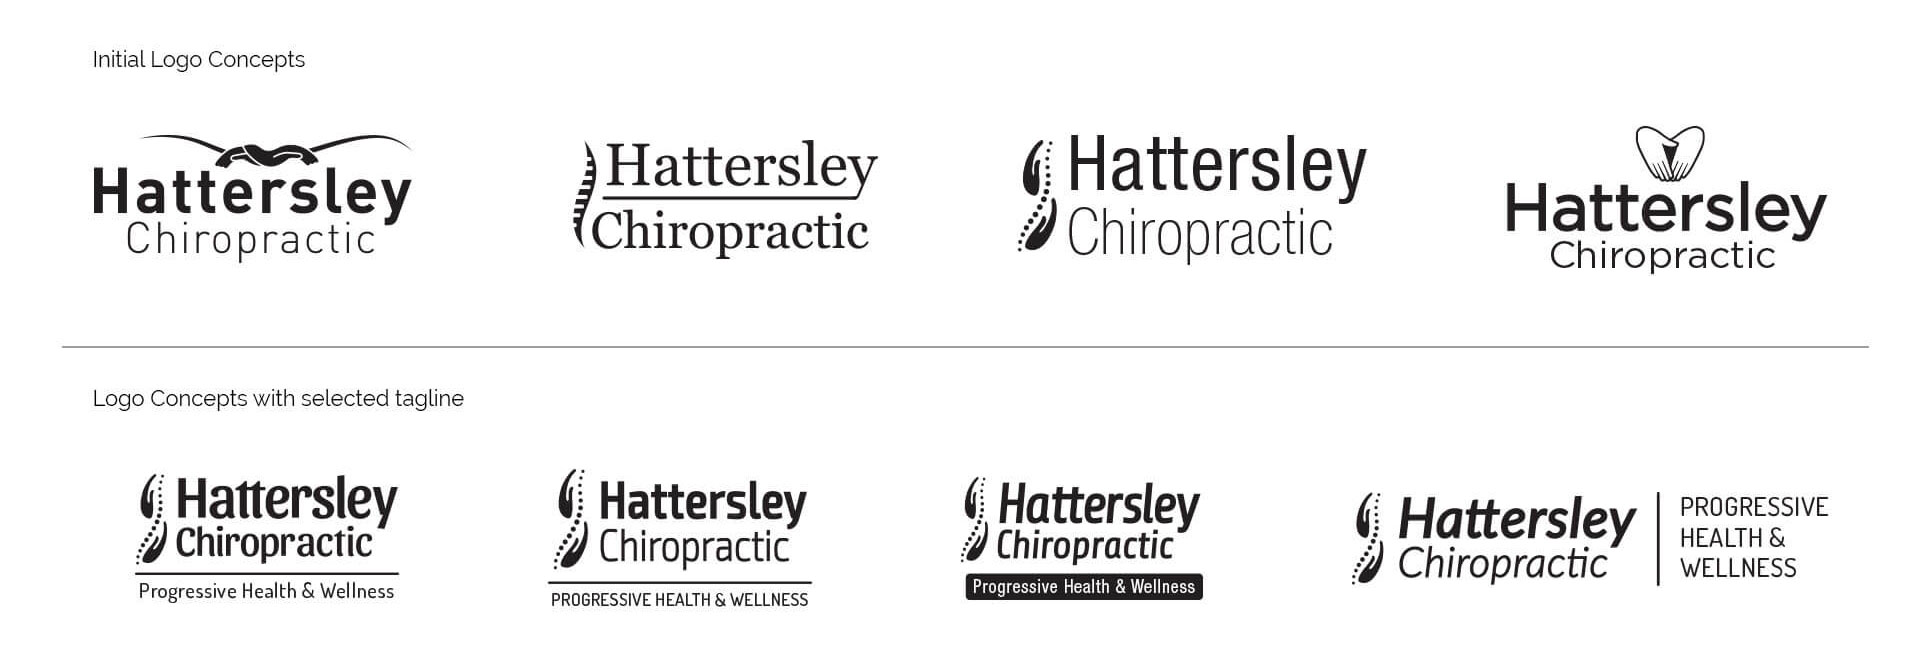 Hattersley-logo-concepts